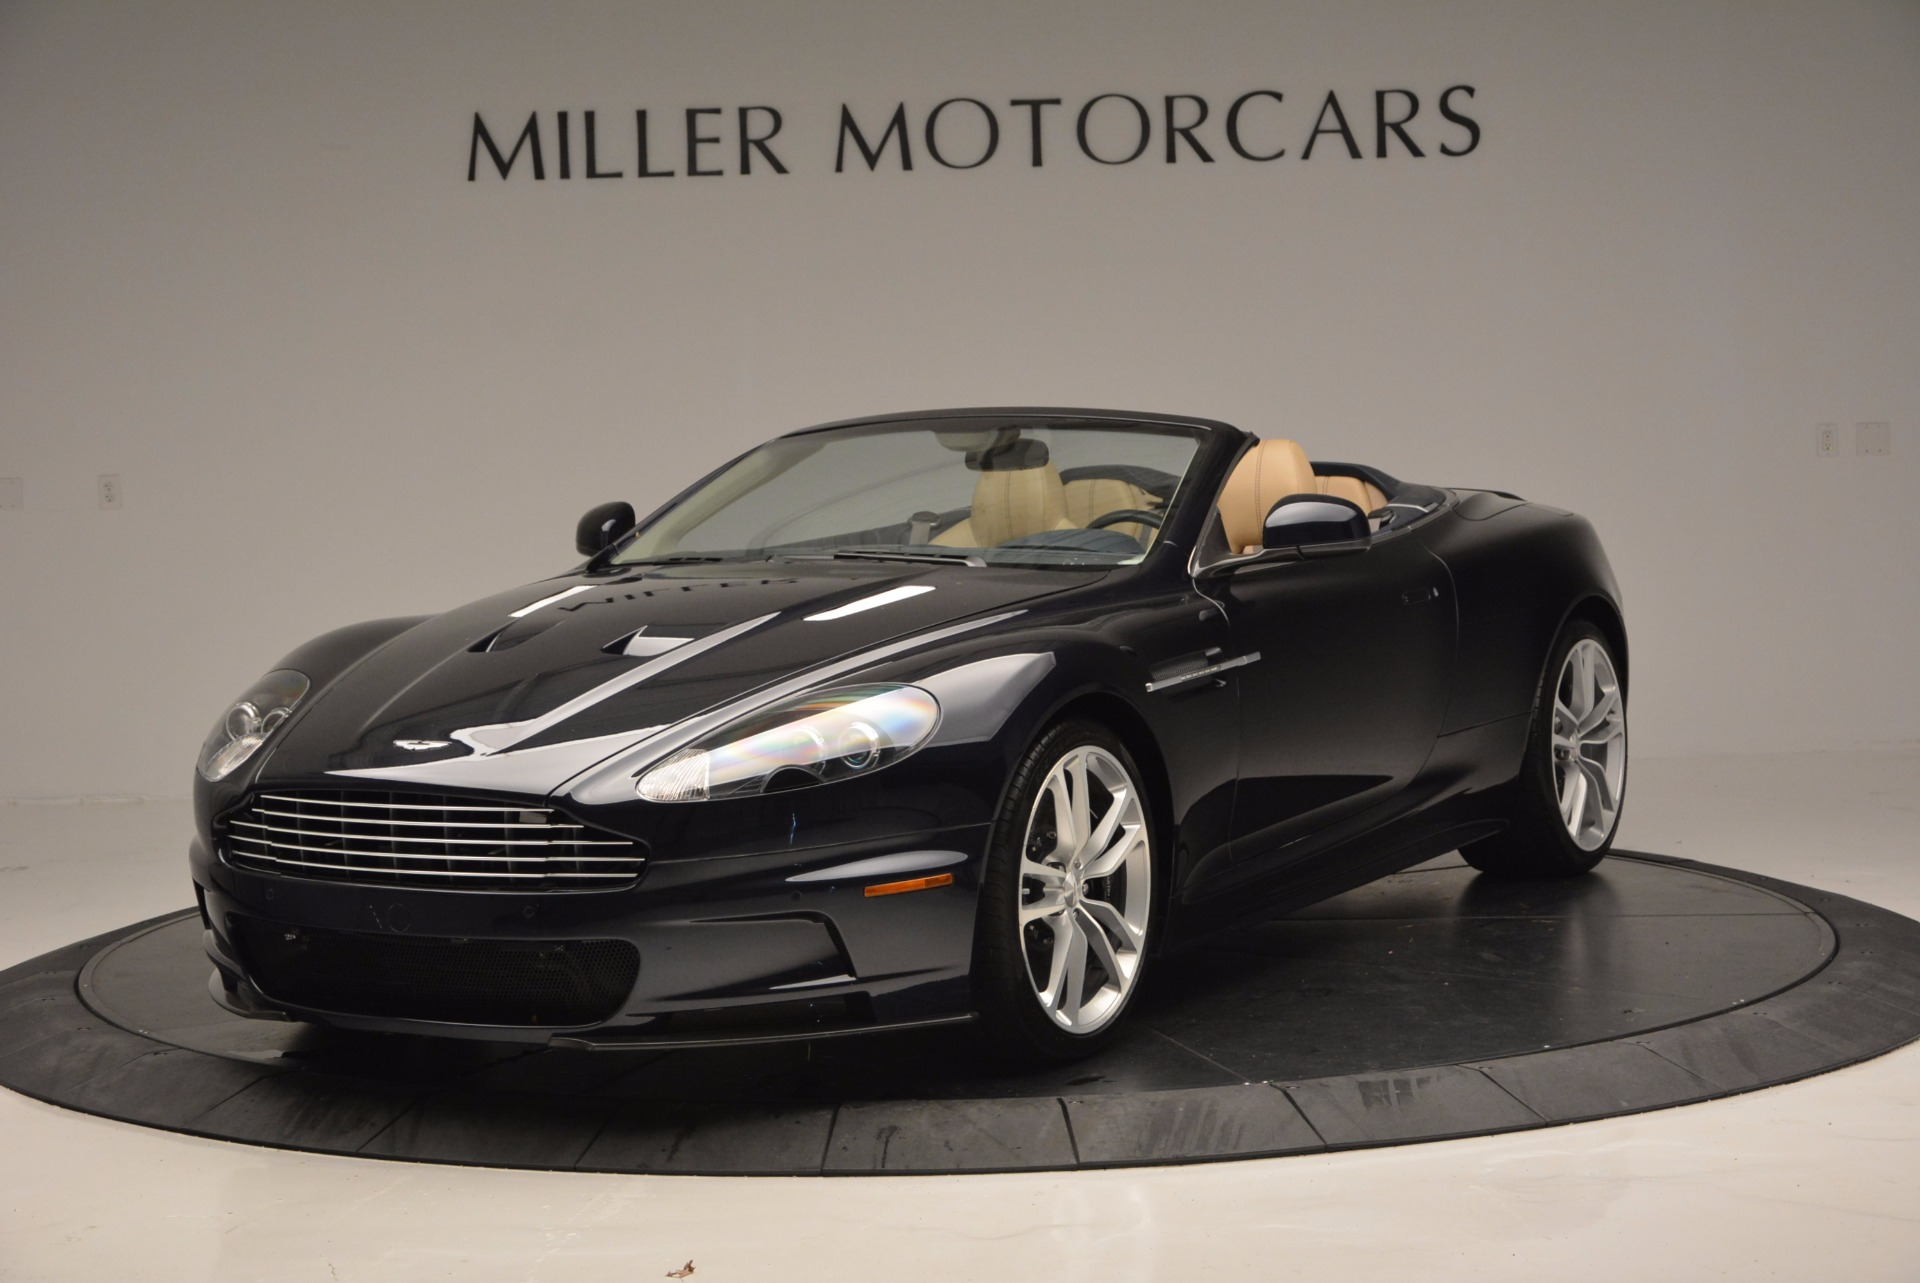 Used 2012 Aston Martin DBS Volante for sale Sold at Alfa Romeo of Westport in Westport CT 06880 1